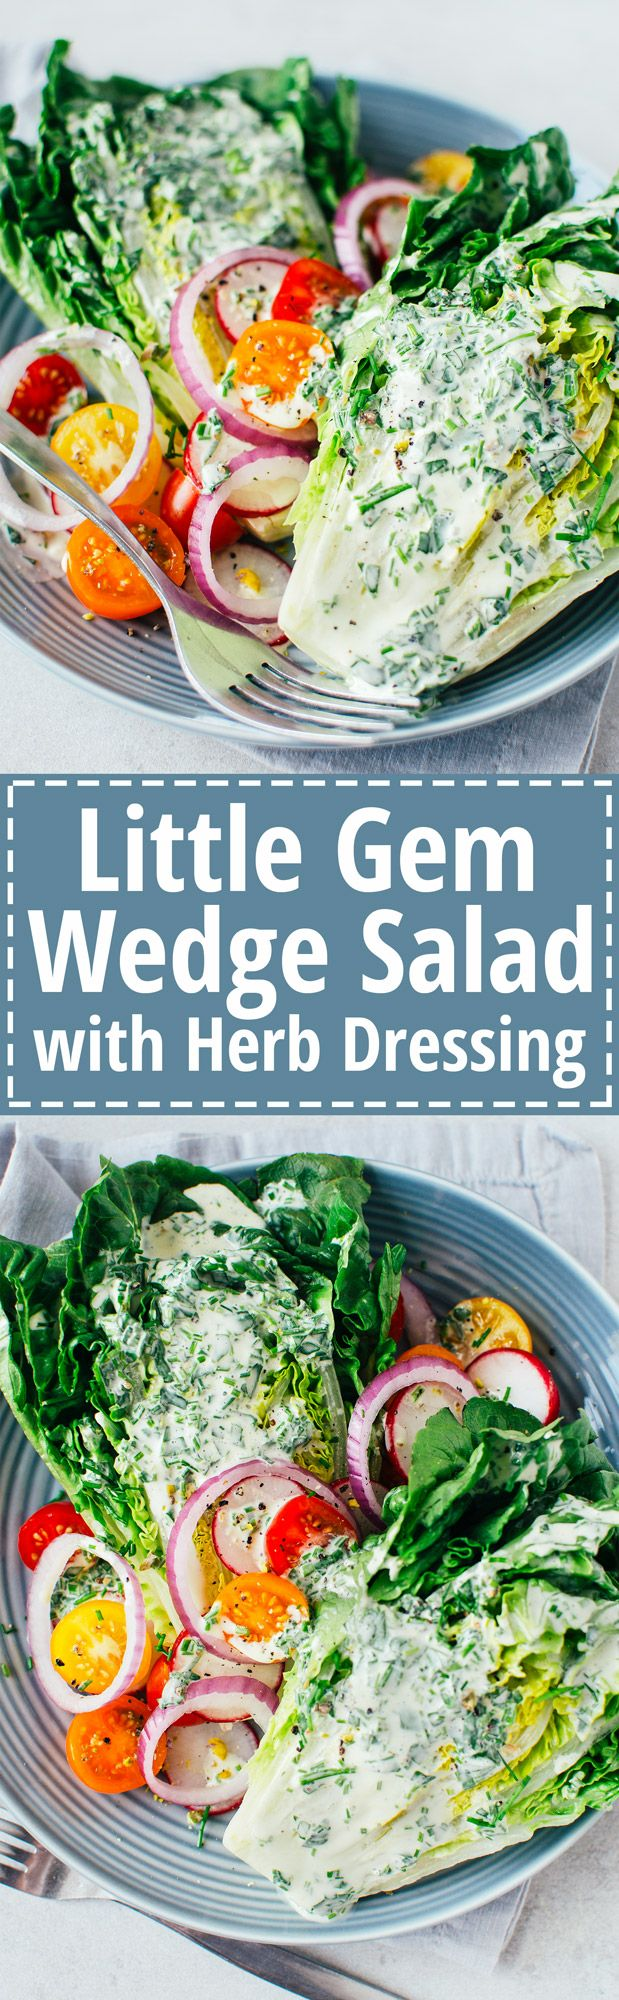 Little Gem Wedge Salad w/ Herb Dressing - A light and refreshing new take on the classic wedge salad. If nothing else make this dressing, it's soooo good. (Vegan & GF) | RECIPE at Nomingthrulife.com